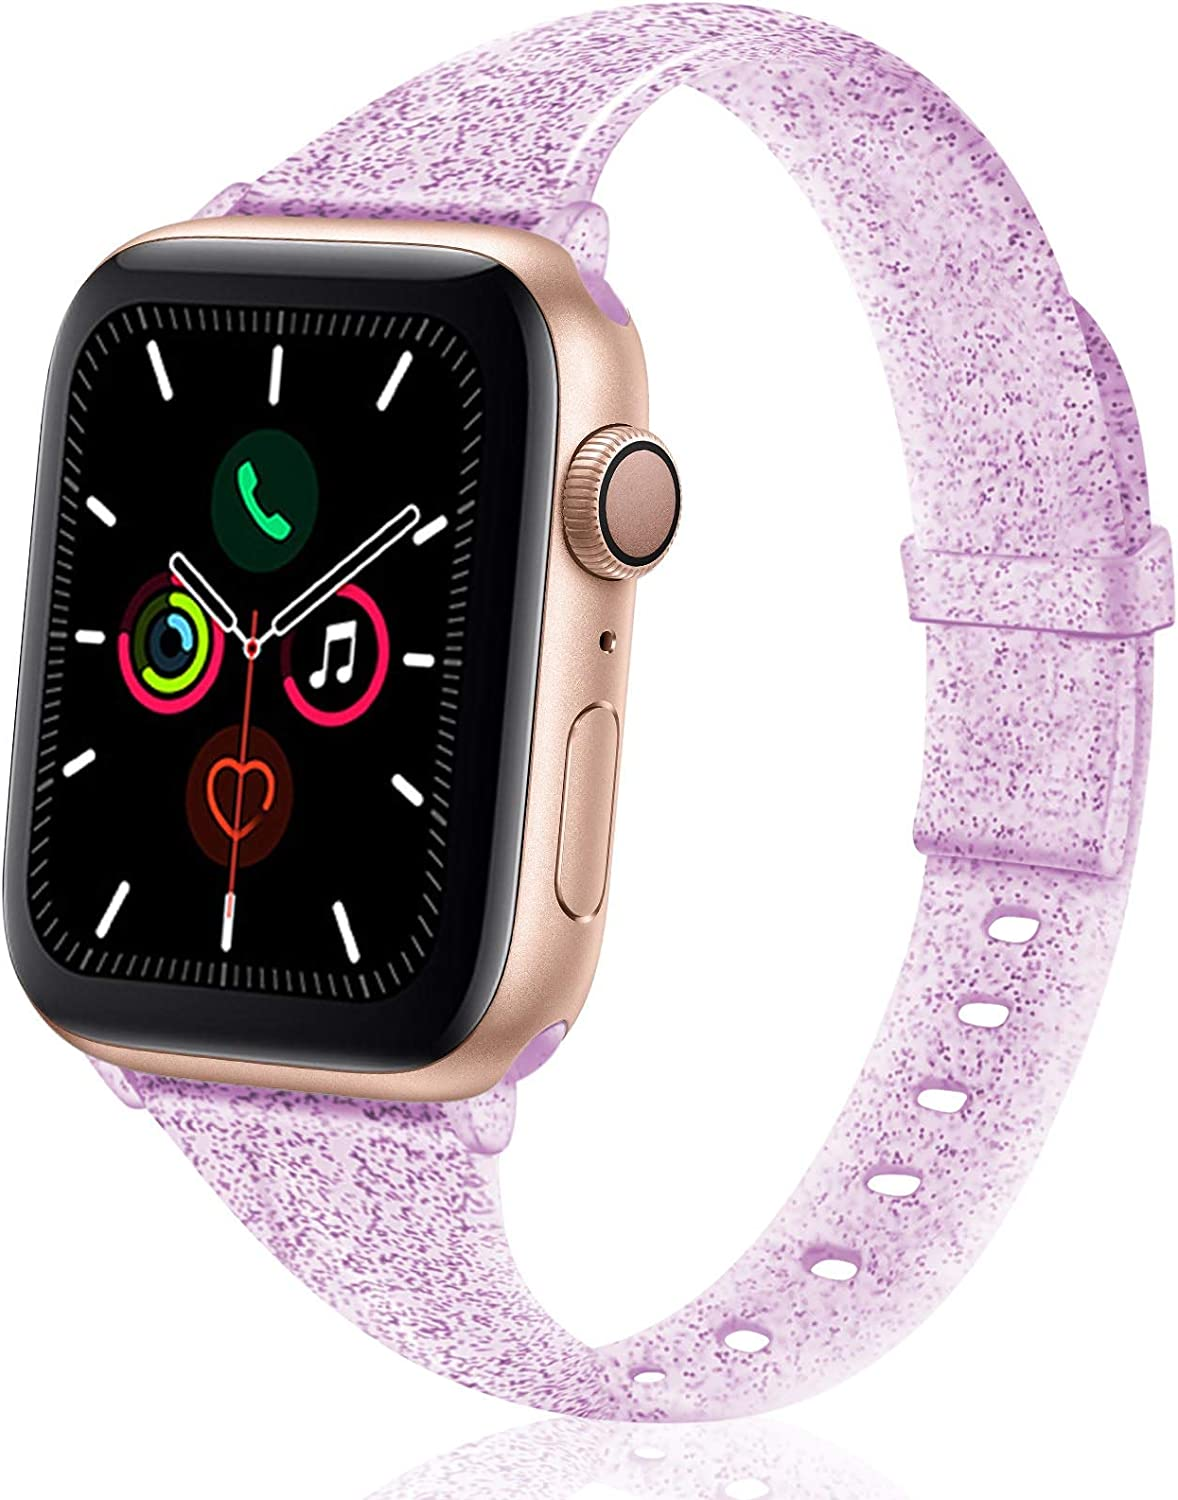 TSAAGAN Glitter Slim Silicone Band Compatible with Apple Watch 38mm 42mm 40mm 44mm, Sparkly Bling Thin Replacement Wristband Accessory for iWatch Series 5/4/3/2/1 (Glitter Lilac, 38mm/40mm)